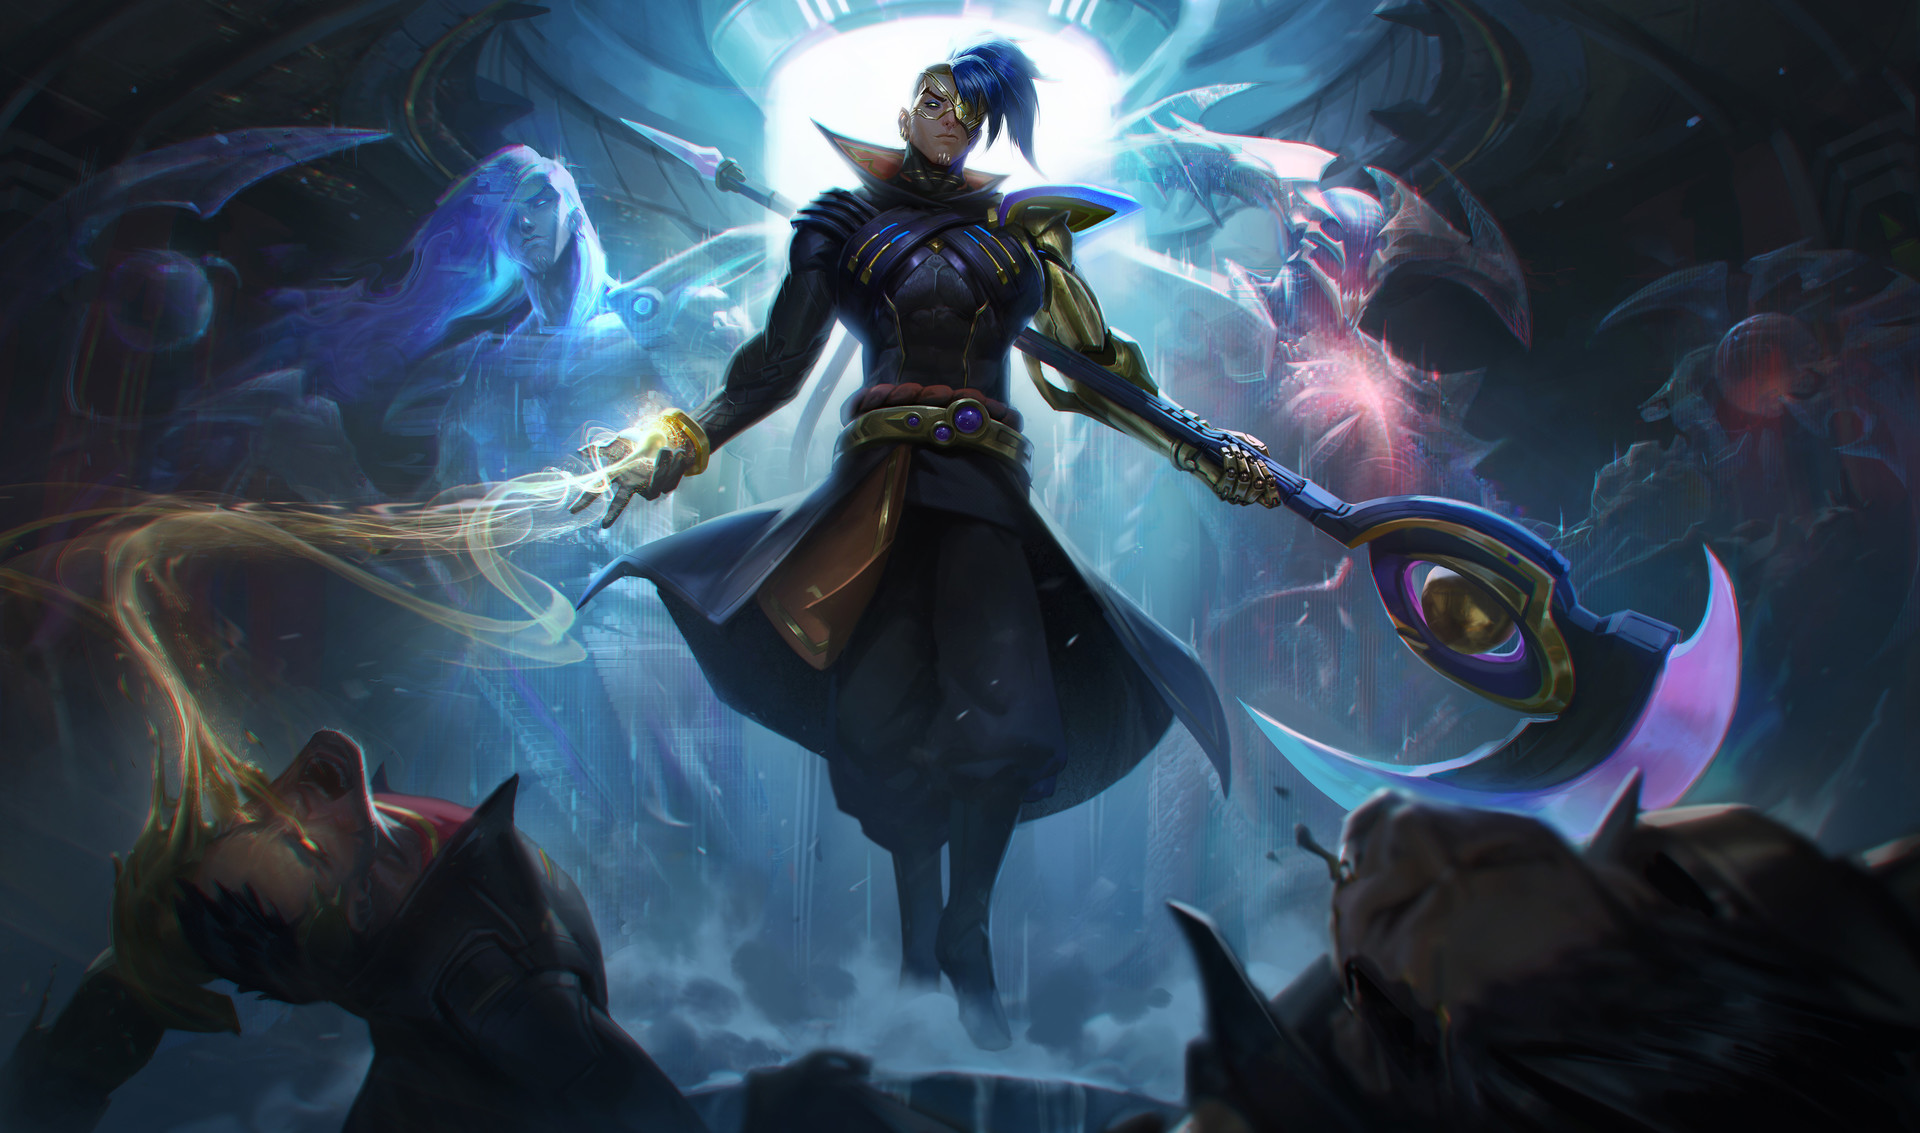 Kenichi ponnath odyssey kayn splash art hd 4k wallpaper background official art artwork league of legends lol 2